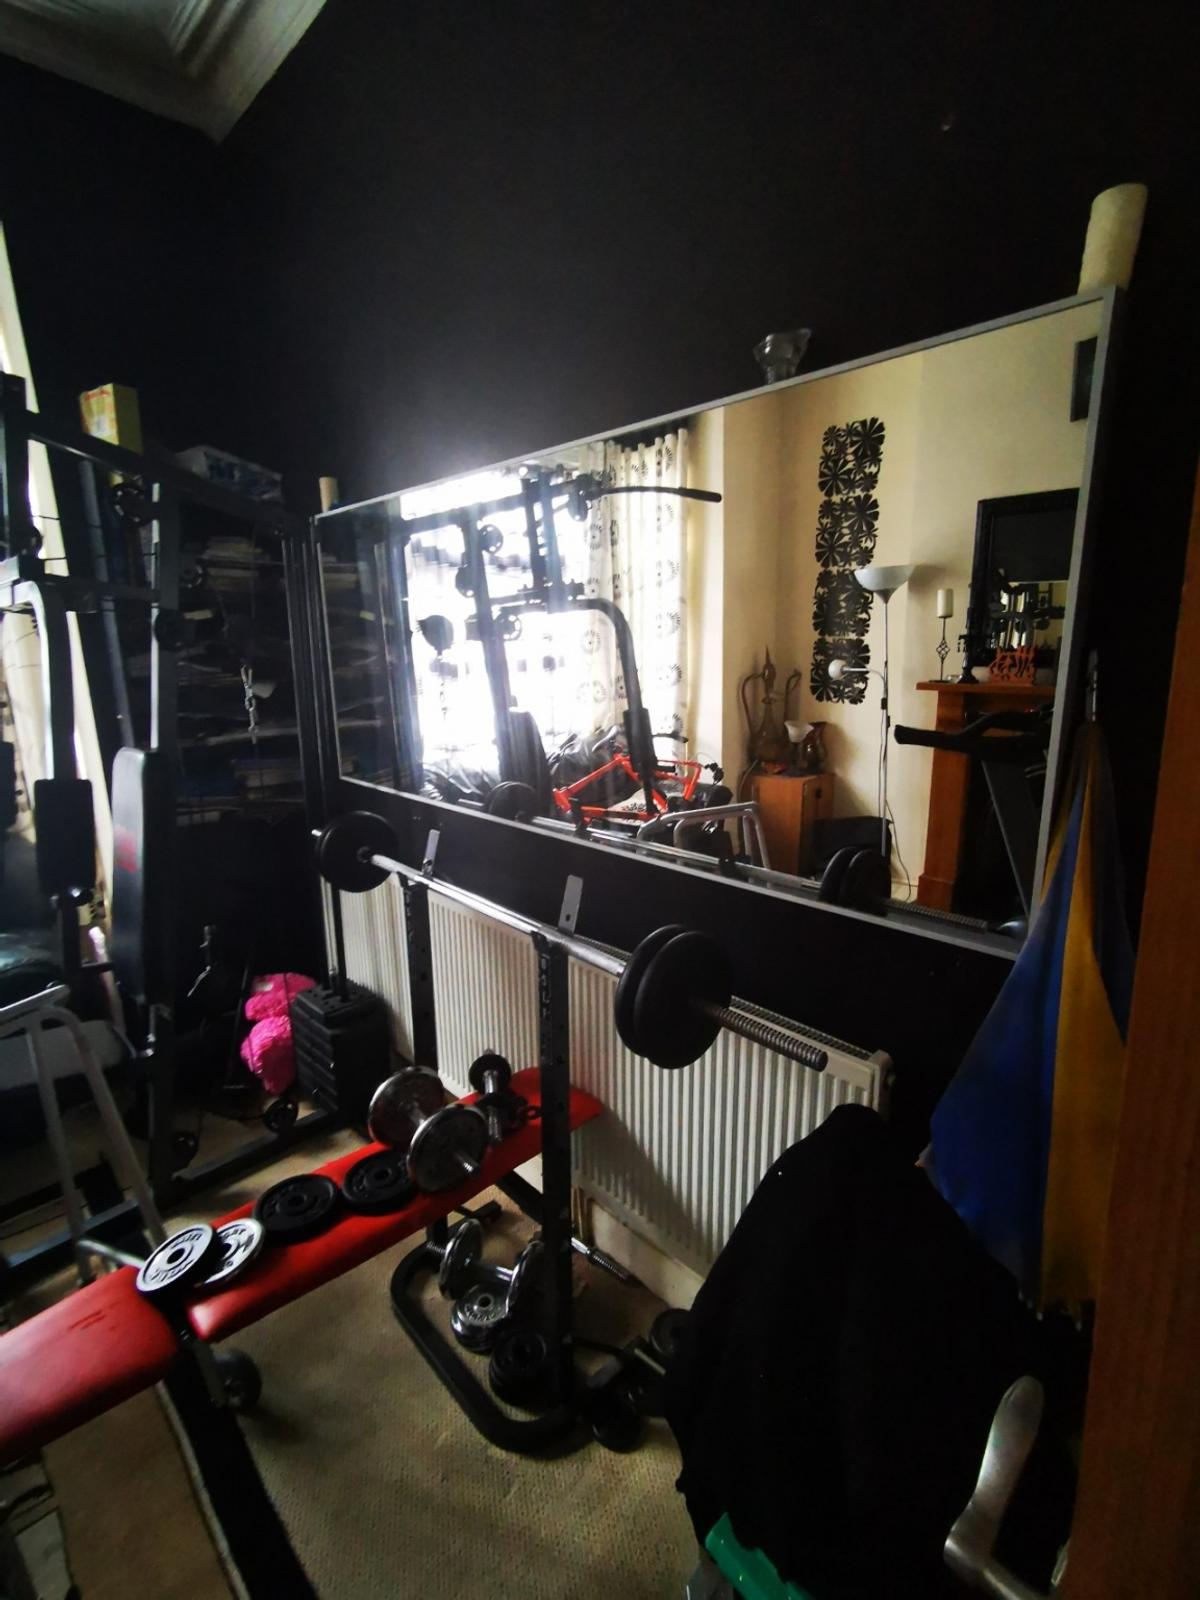 Gym Mirrors In B20 Birmingham For 150 00 For Sale Shpock